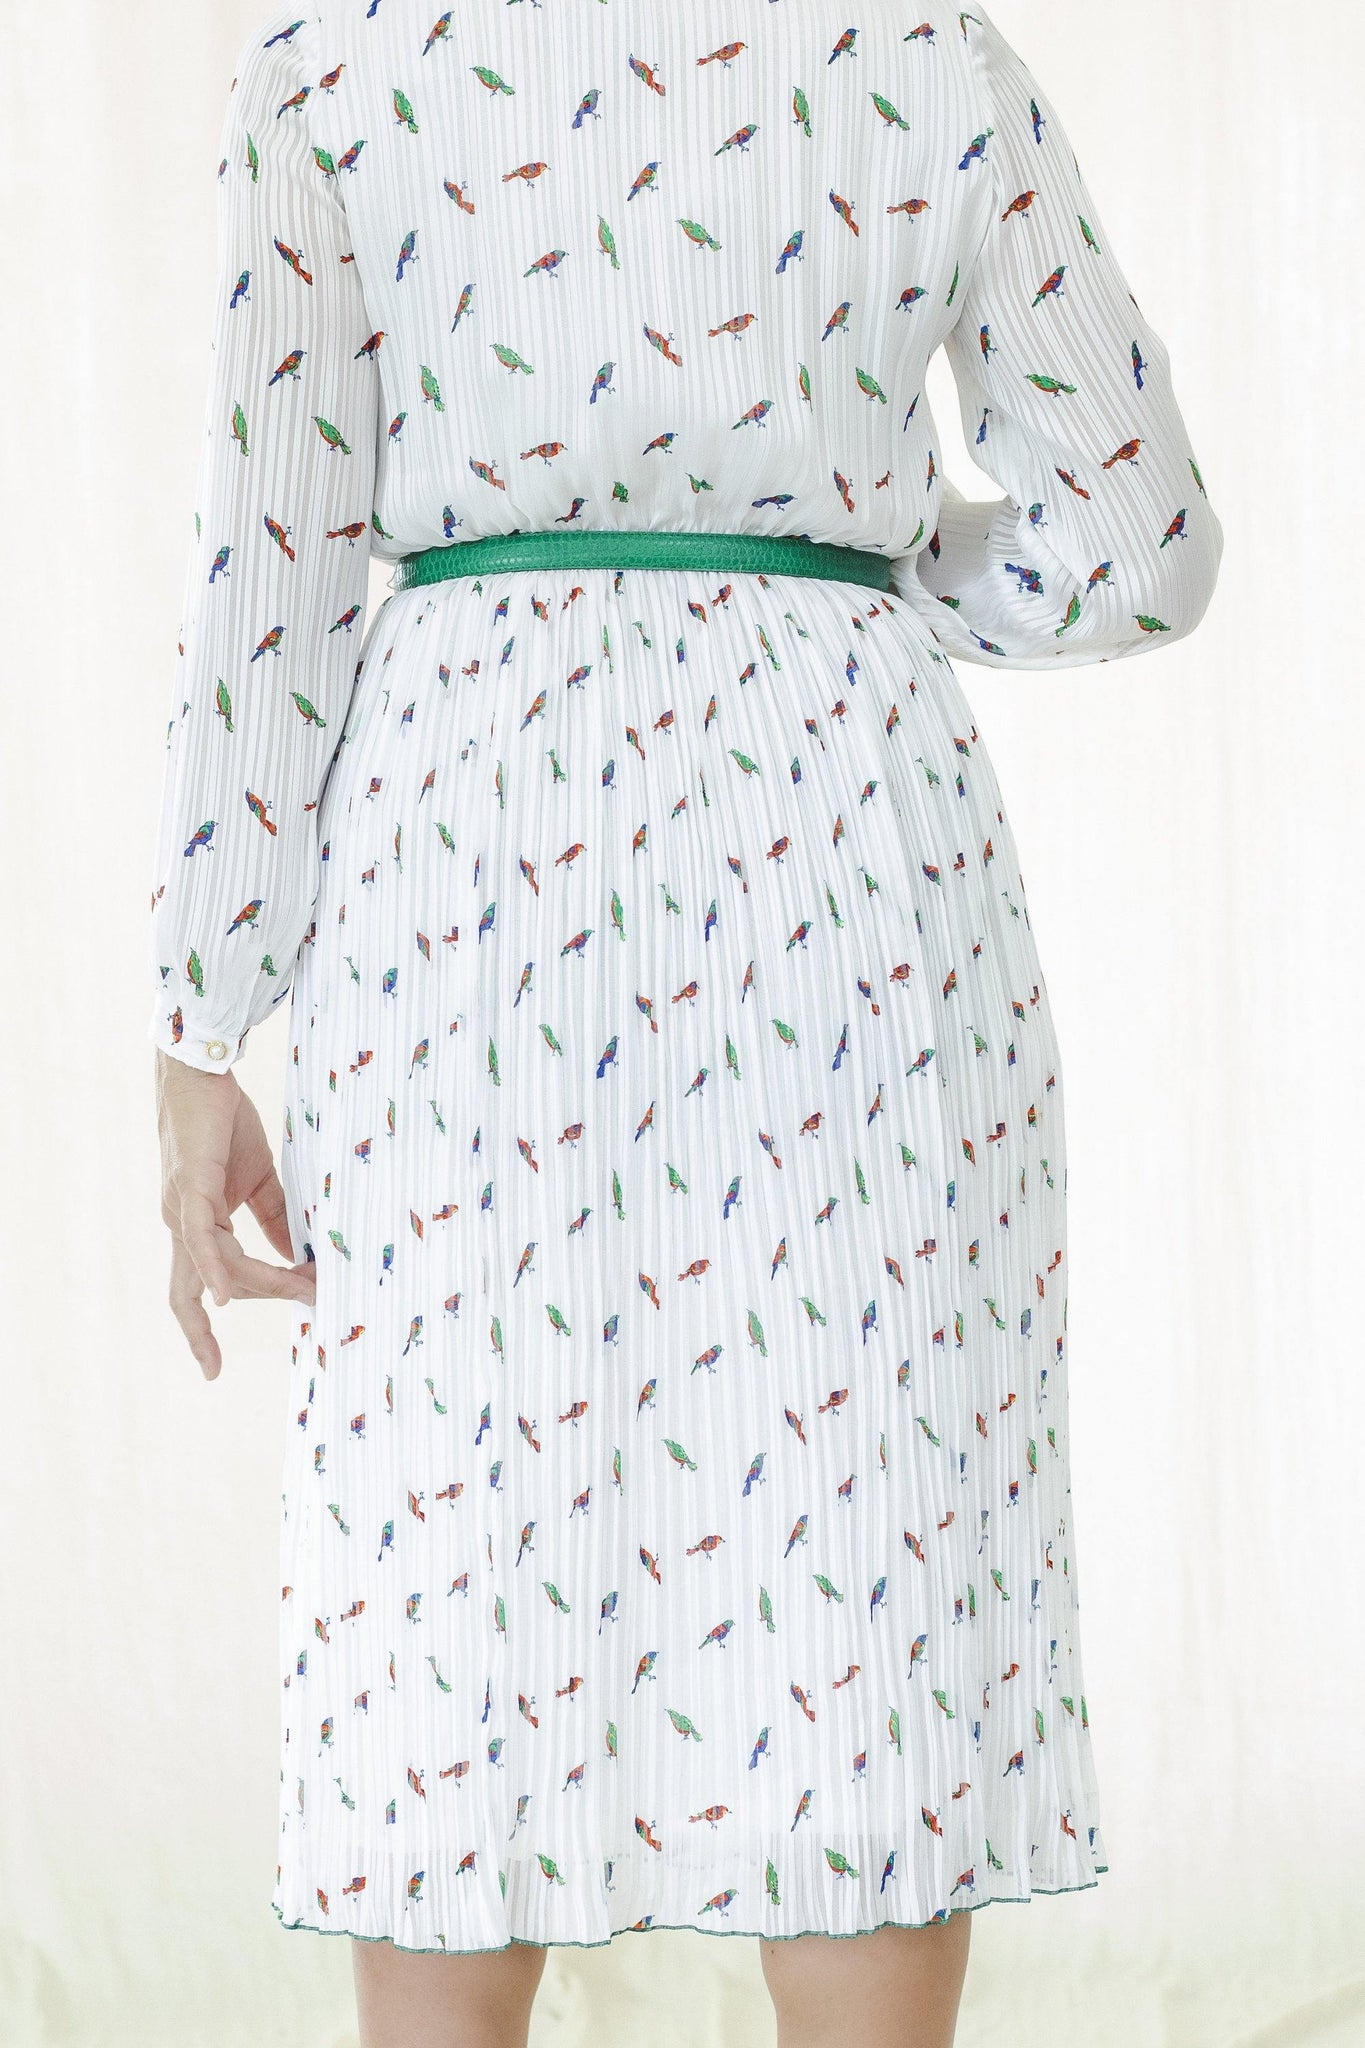 Dress l 1980s Japanese pleated dress with small bird print and Victorian style collar - Sugar & Cream Vintage